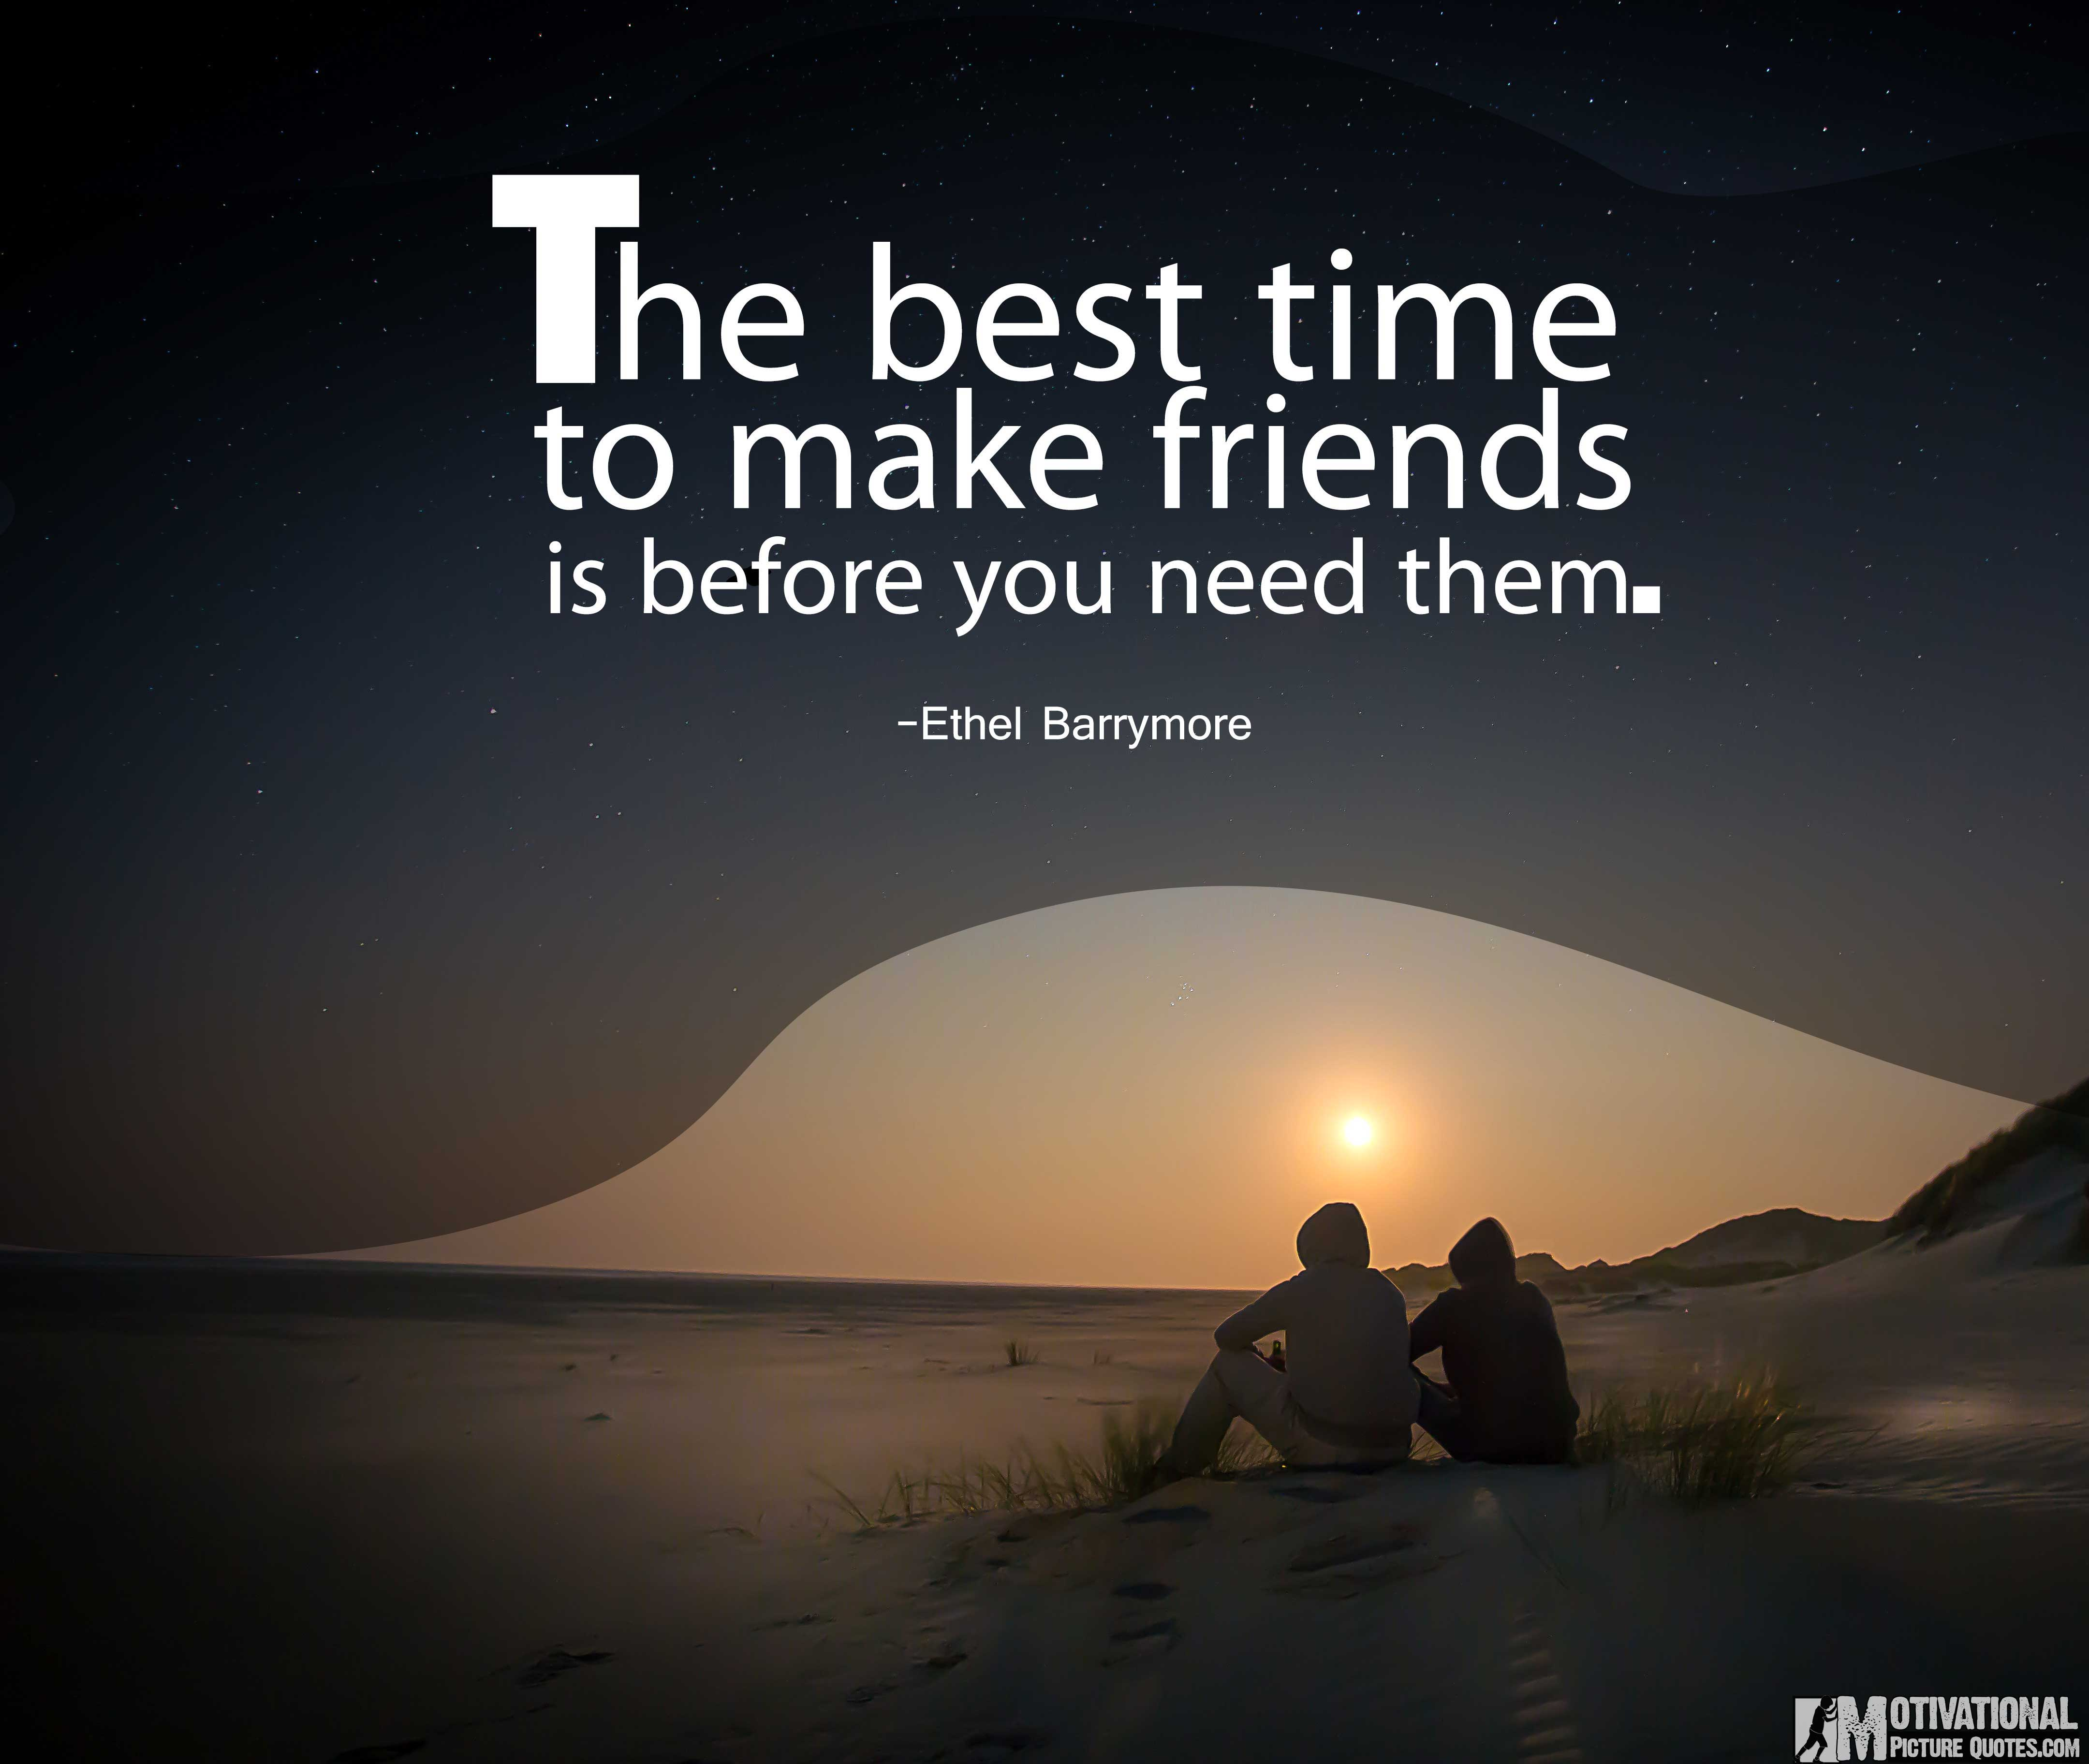 Motivational Quotes Friendship: 25+ Inspirational Friendship Quotes Images